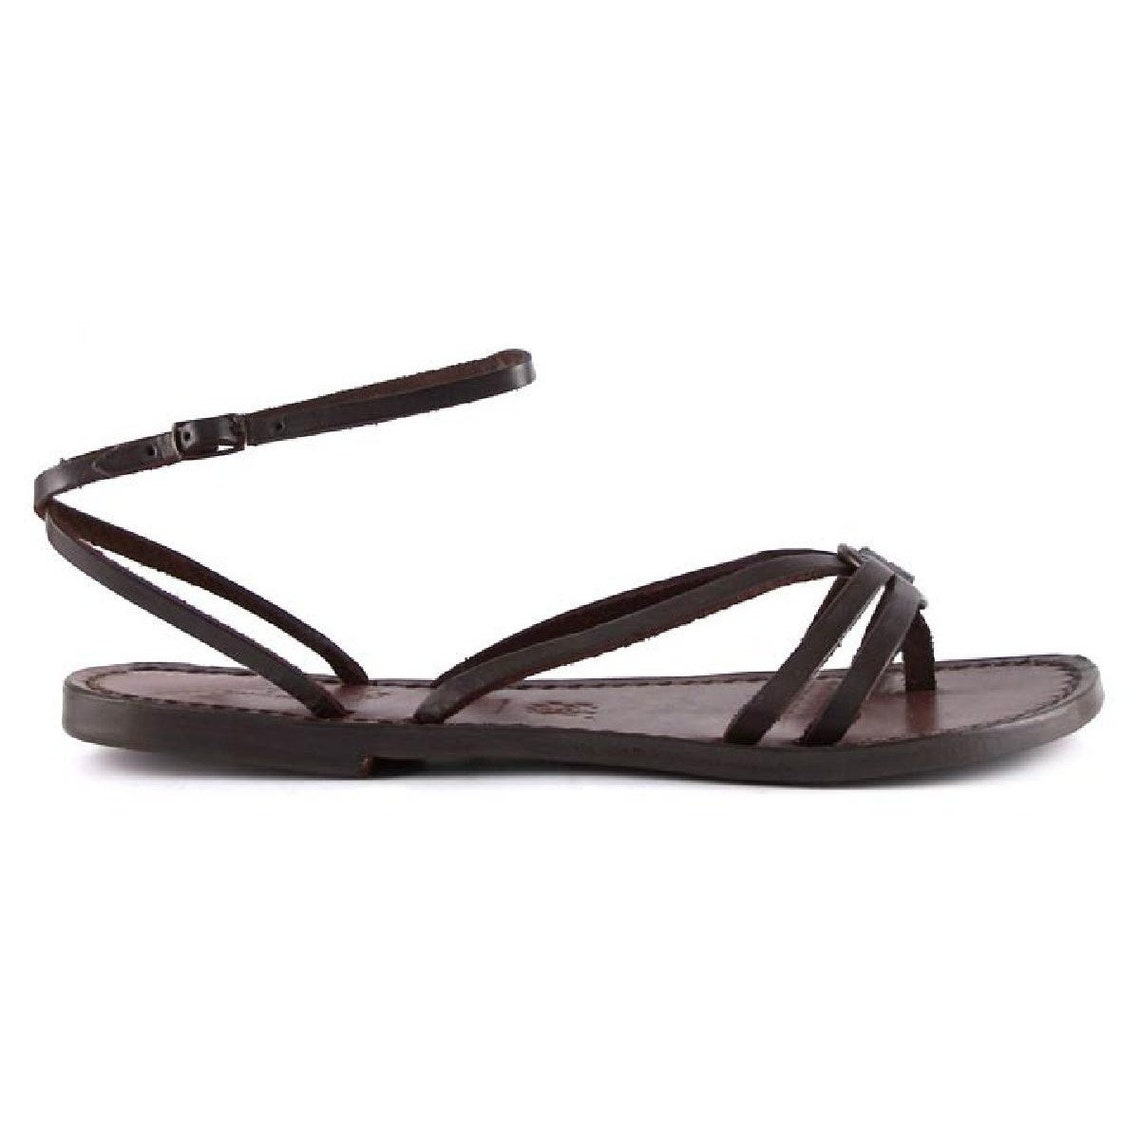 Women sandals hand made in Italy in dark brown leather |